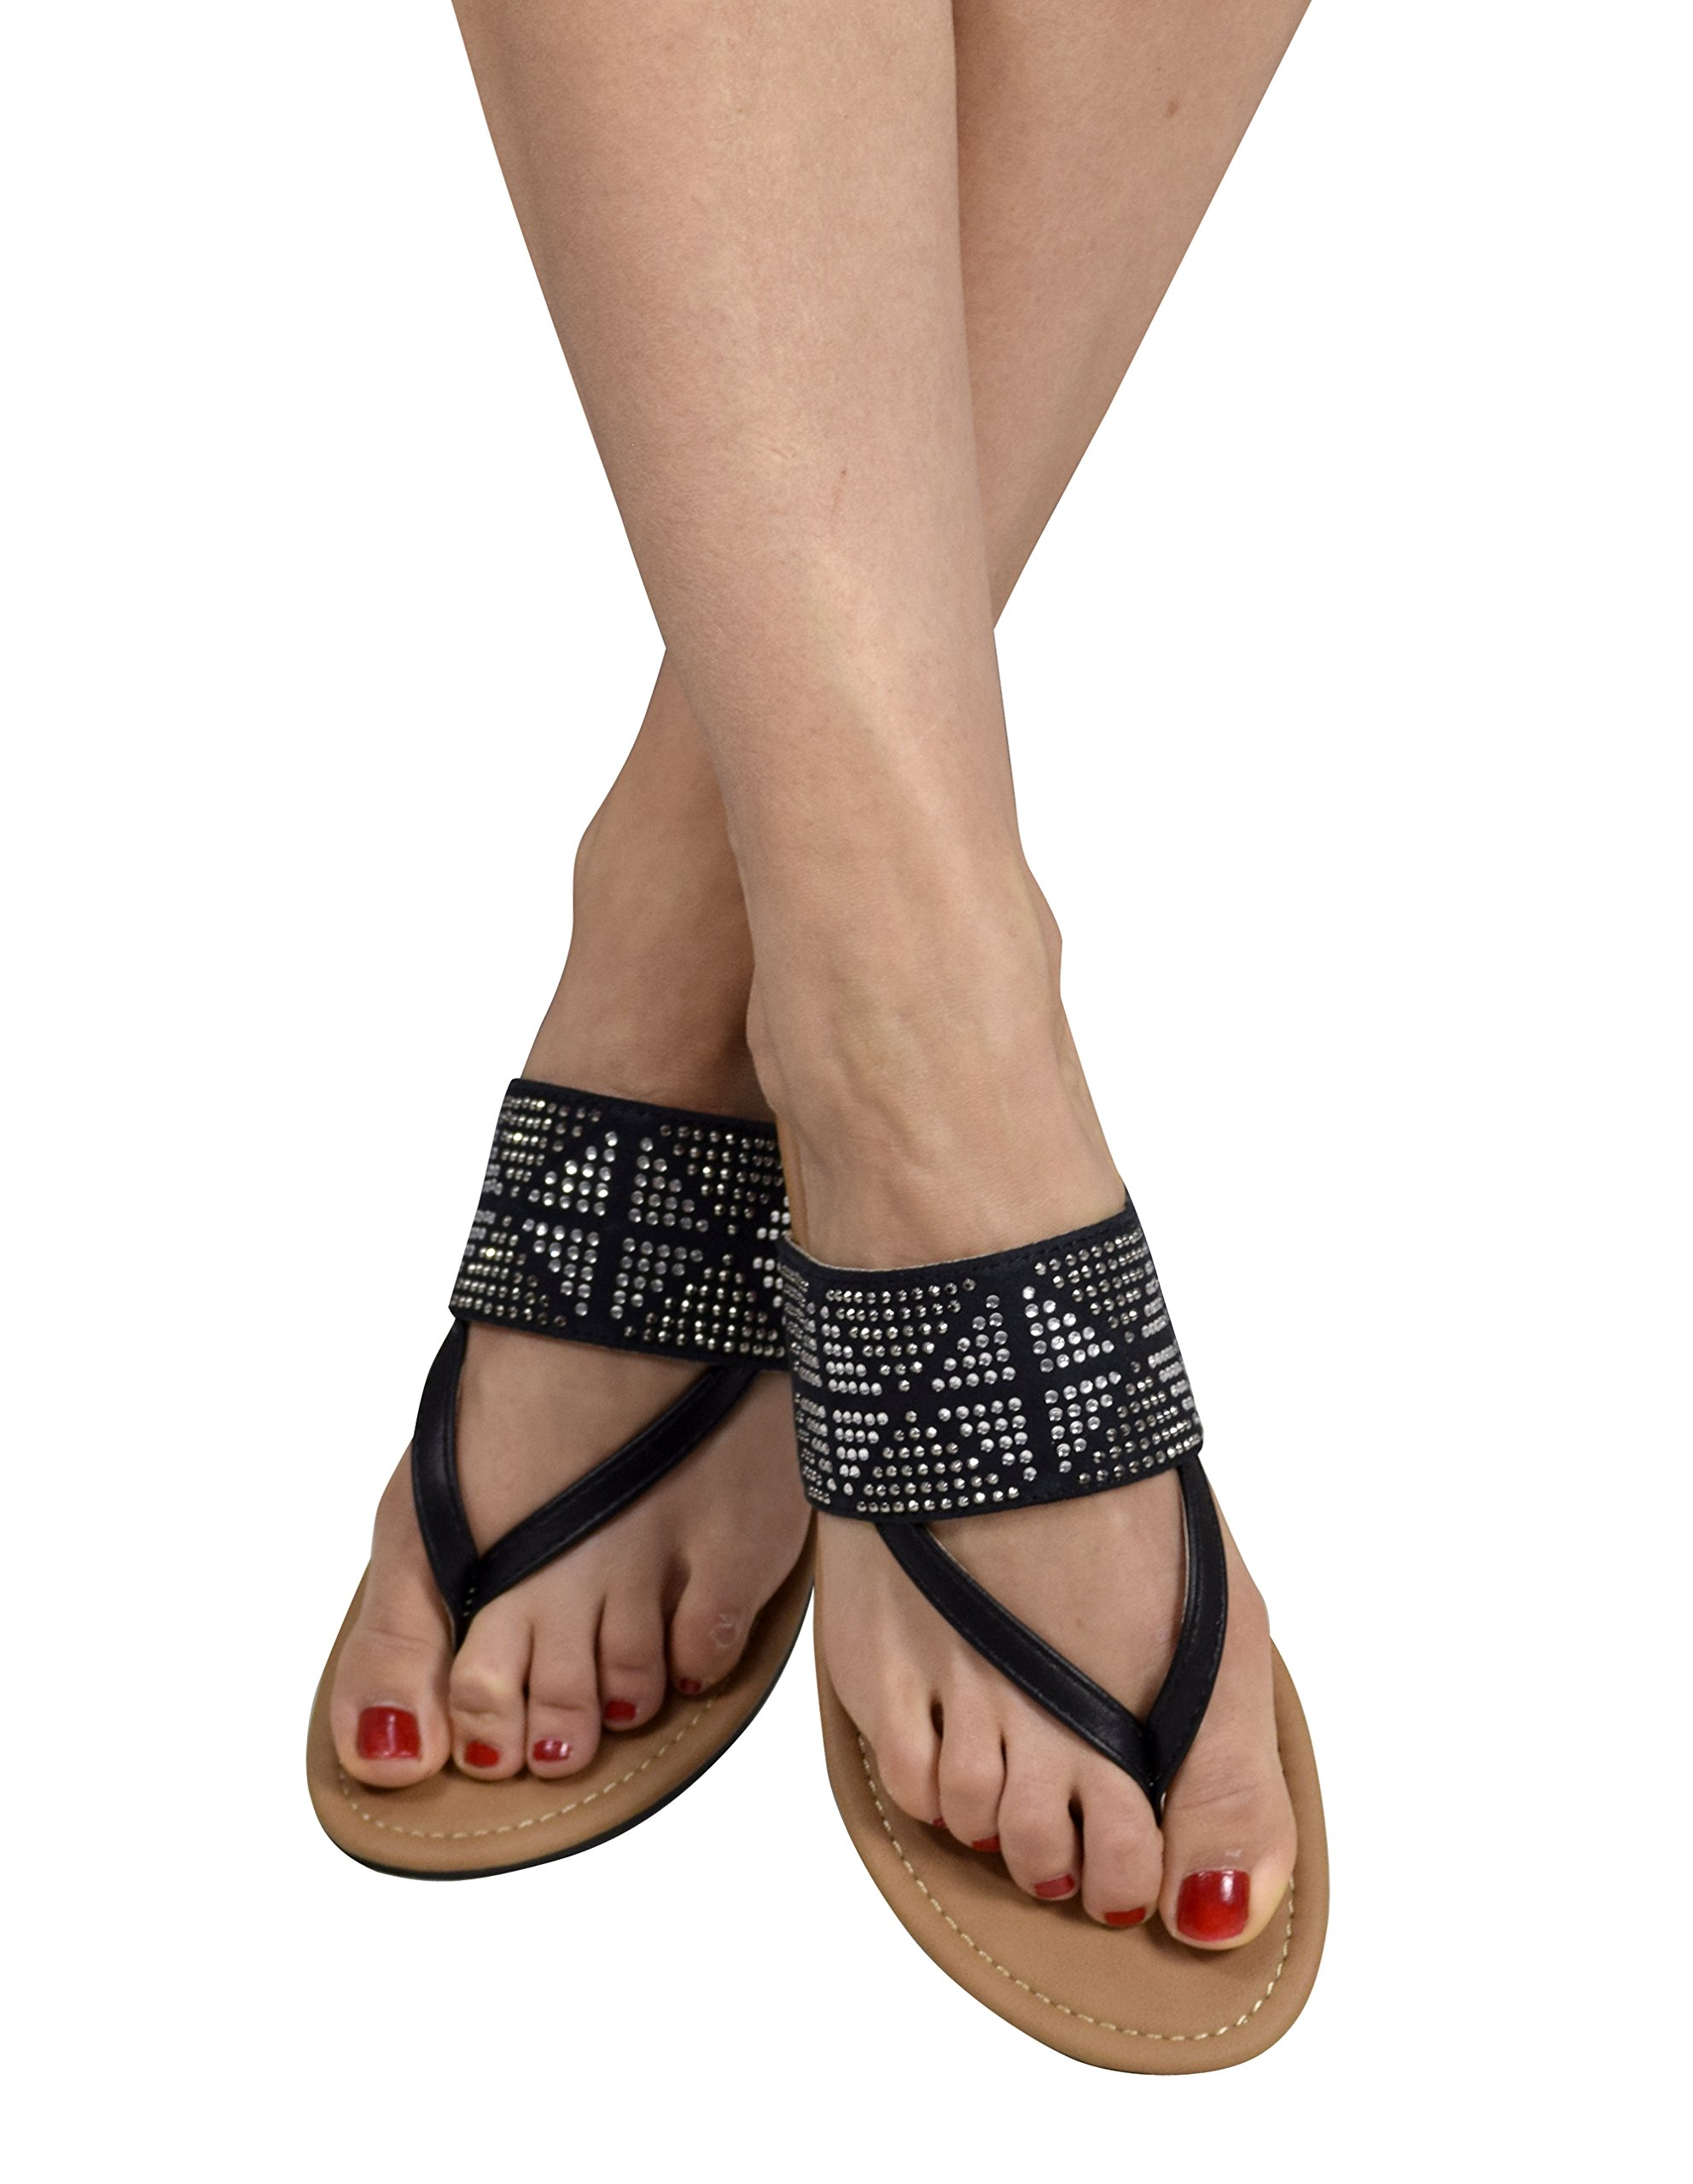 Peach Couture Womens Double Strap Pearl Studded Wide Band Slides Sandals Black 7 B(M) US